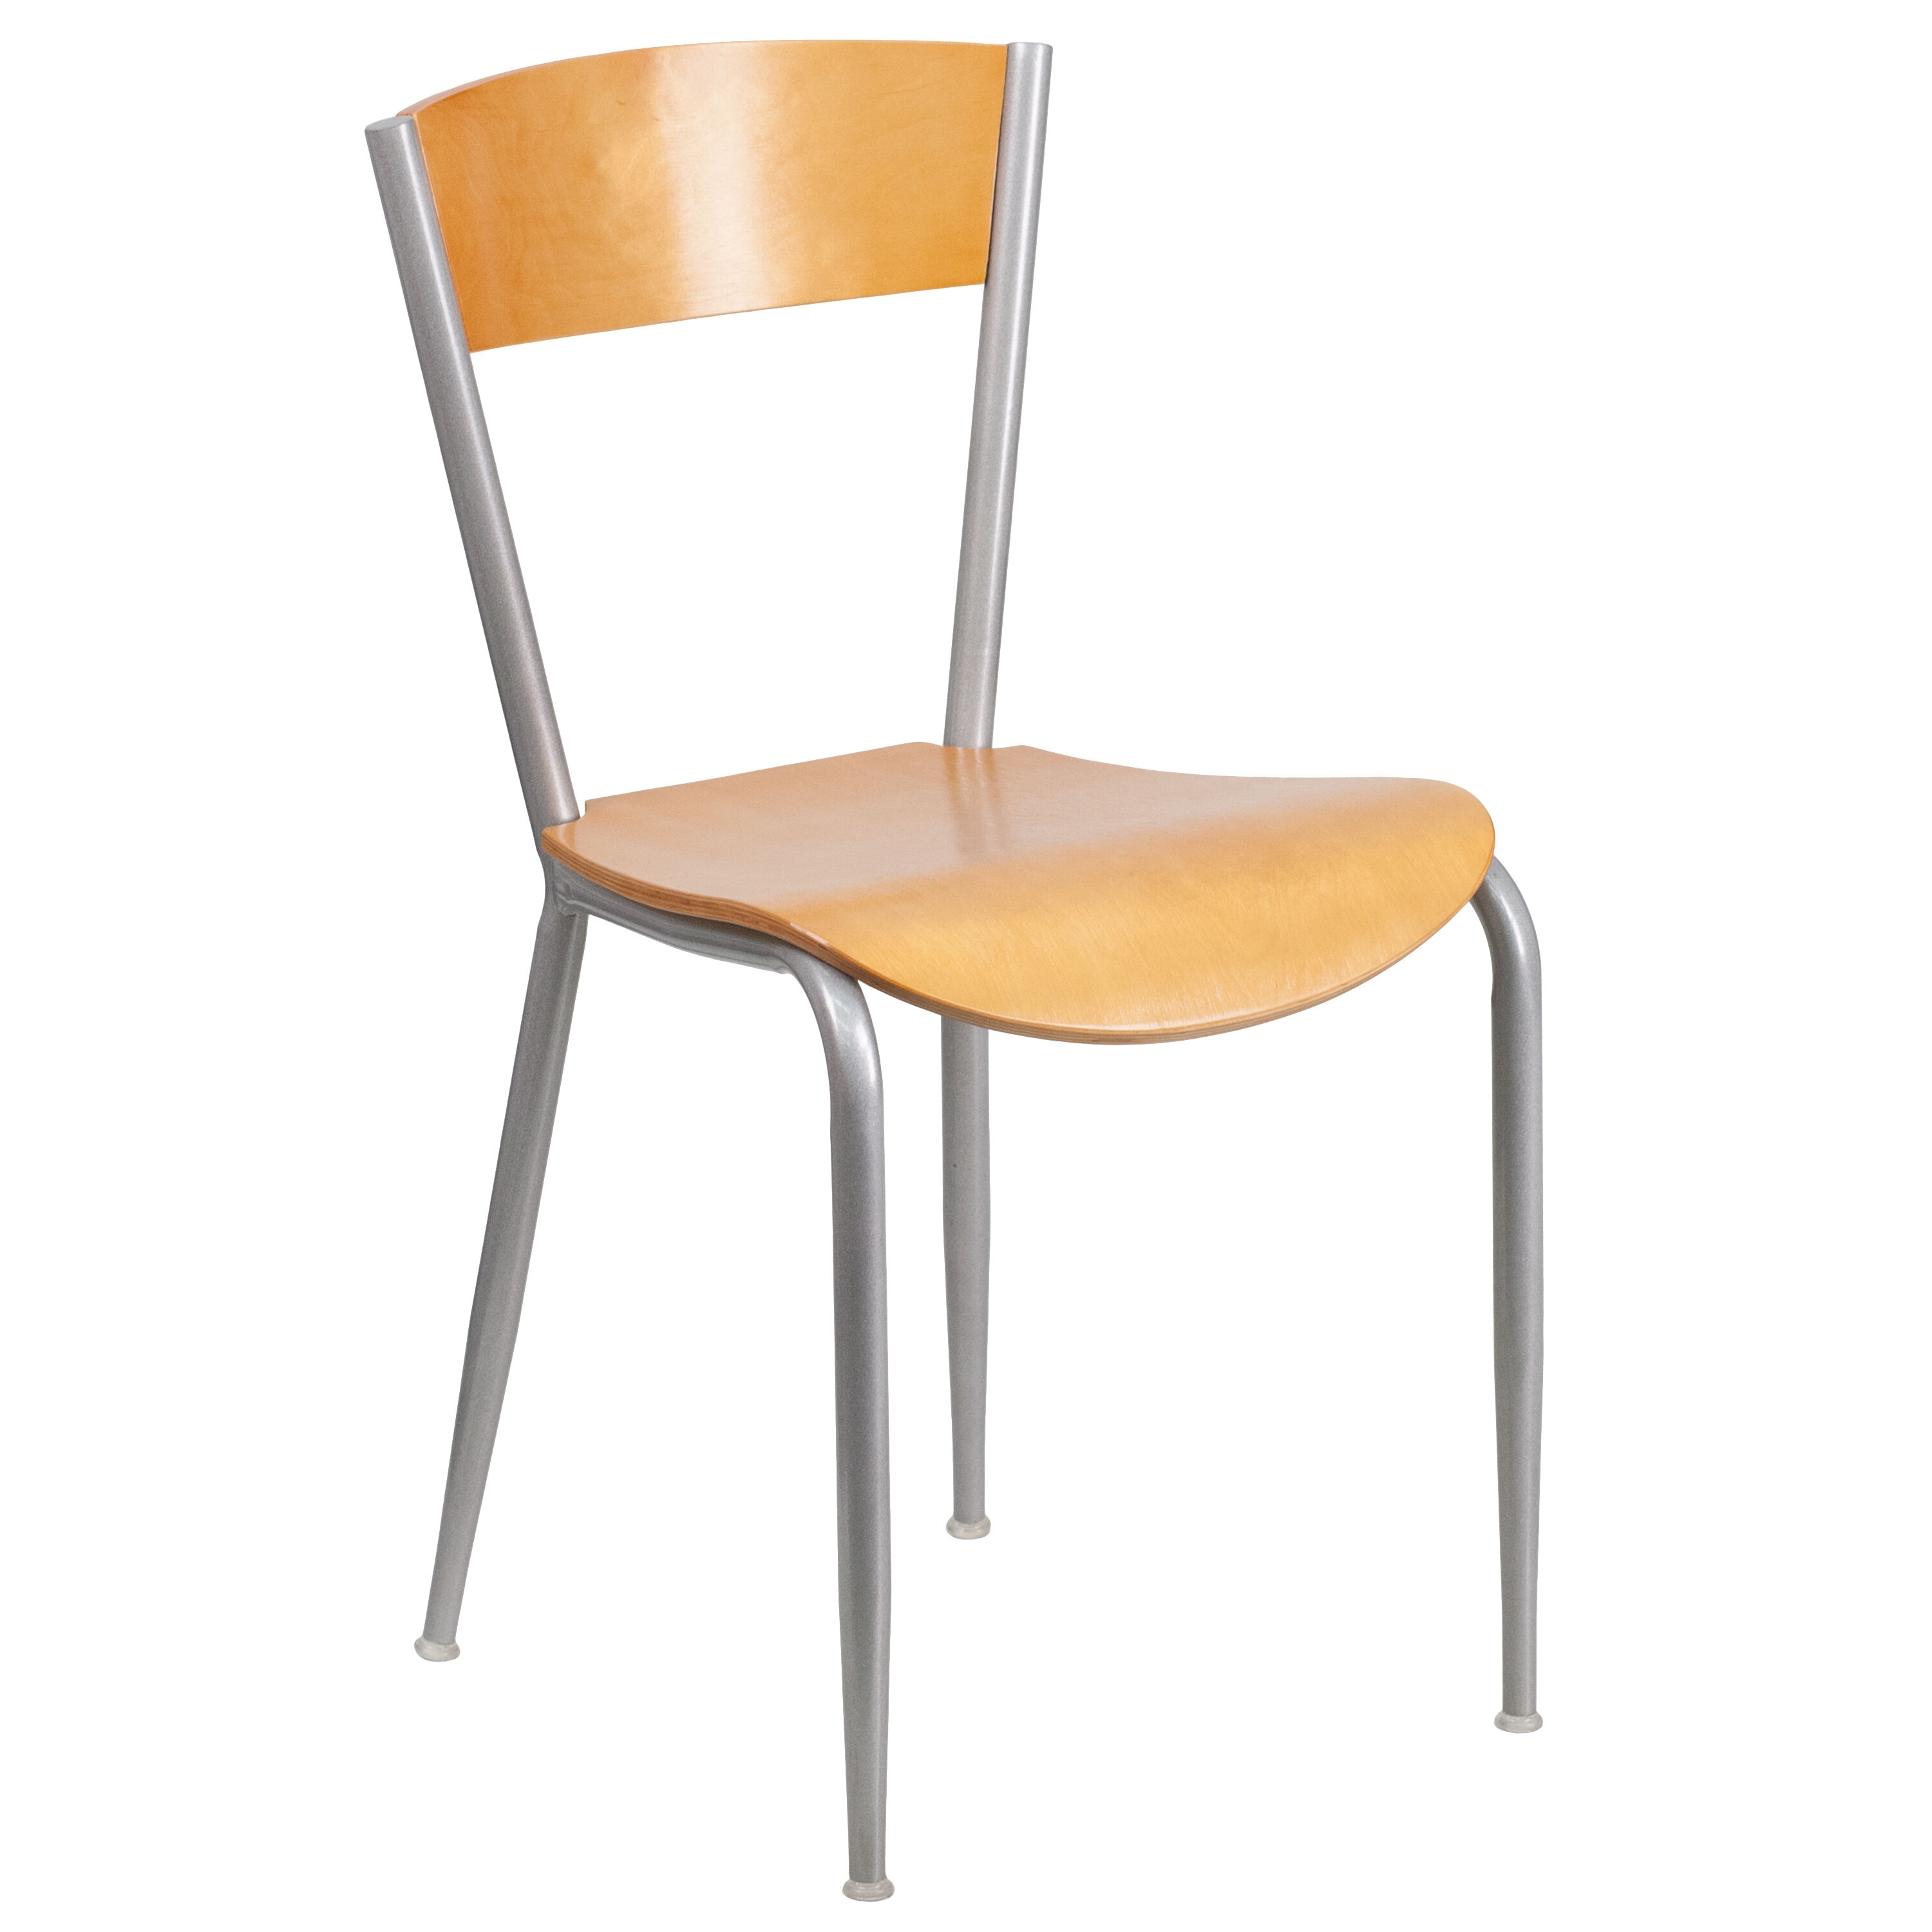 Restaurant Chairs T And D Restaurant Equipment Metal Restaurant Chair With